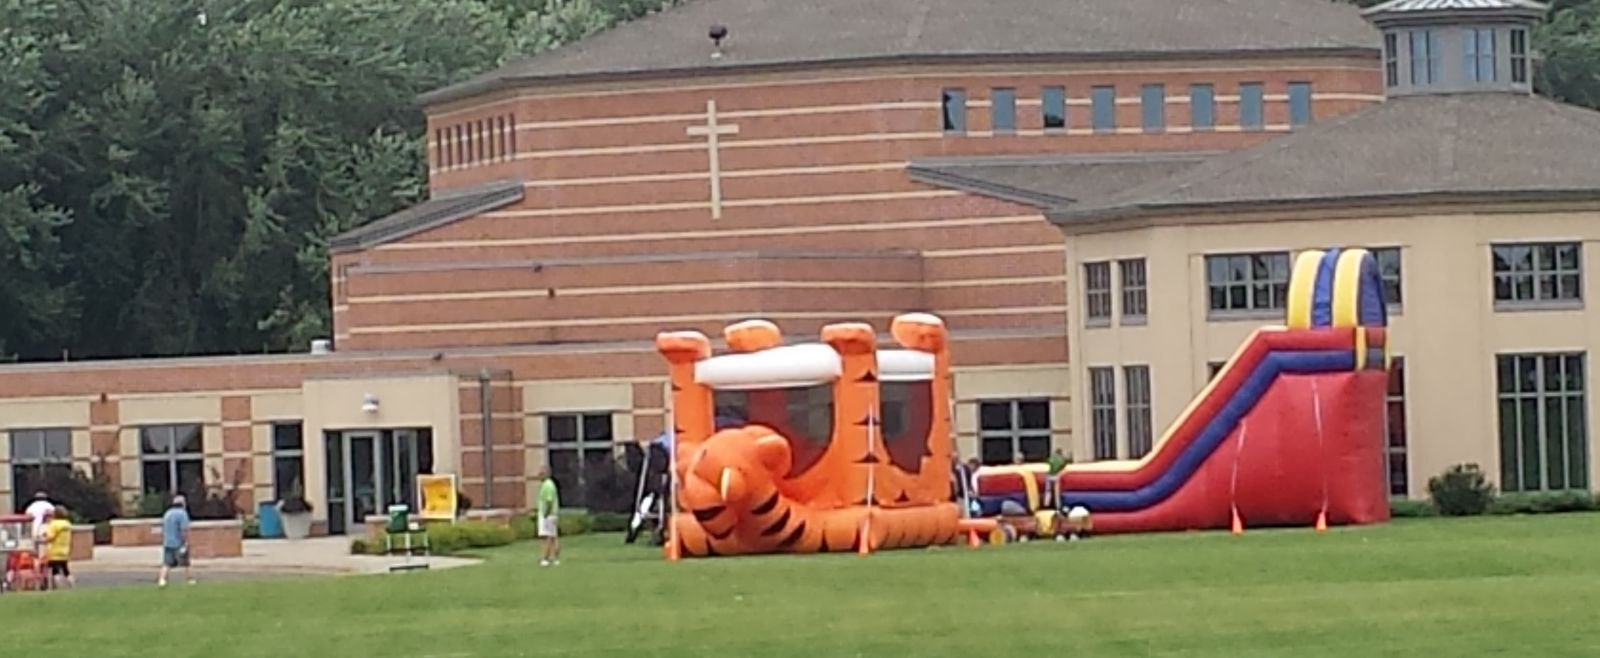 Tiger Belly Bouncer and 18' GIANT Dry Slide in front of church